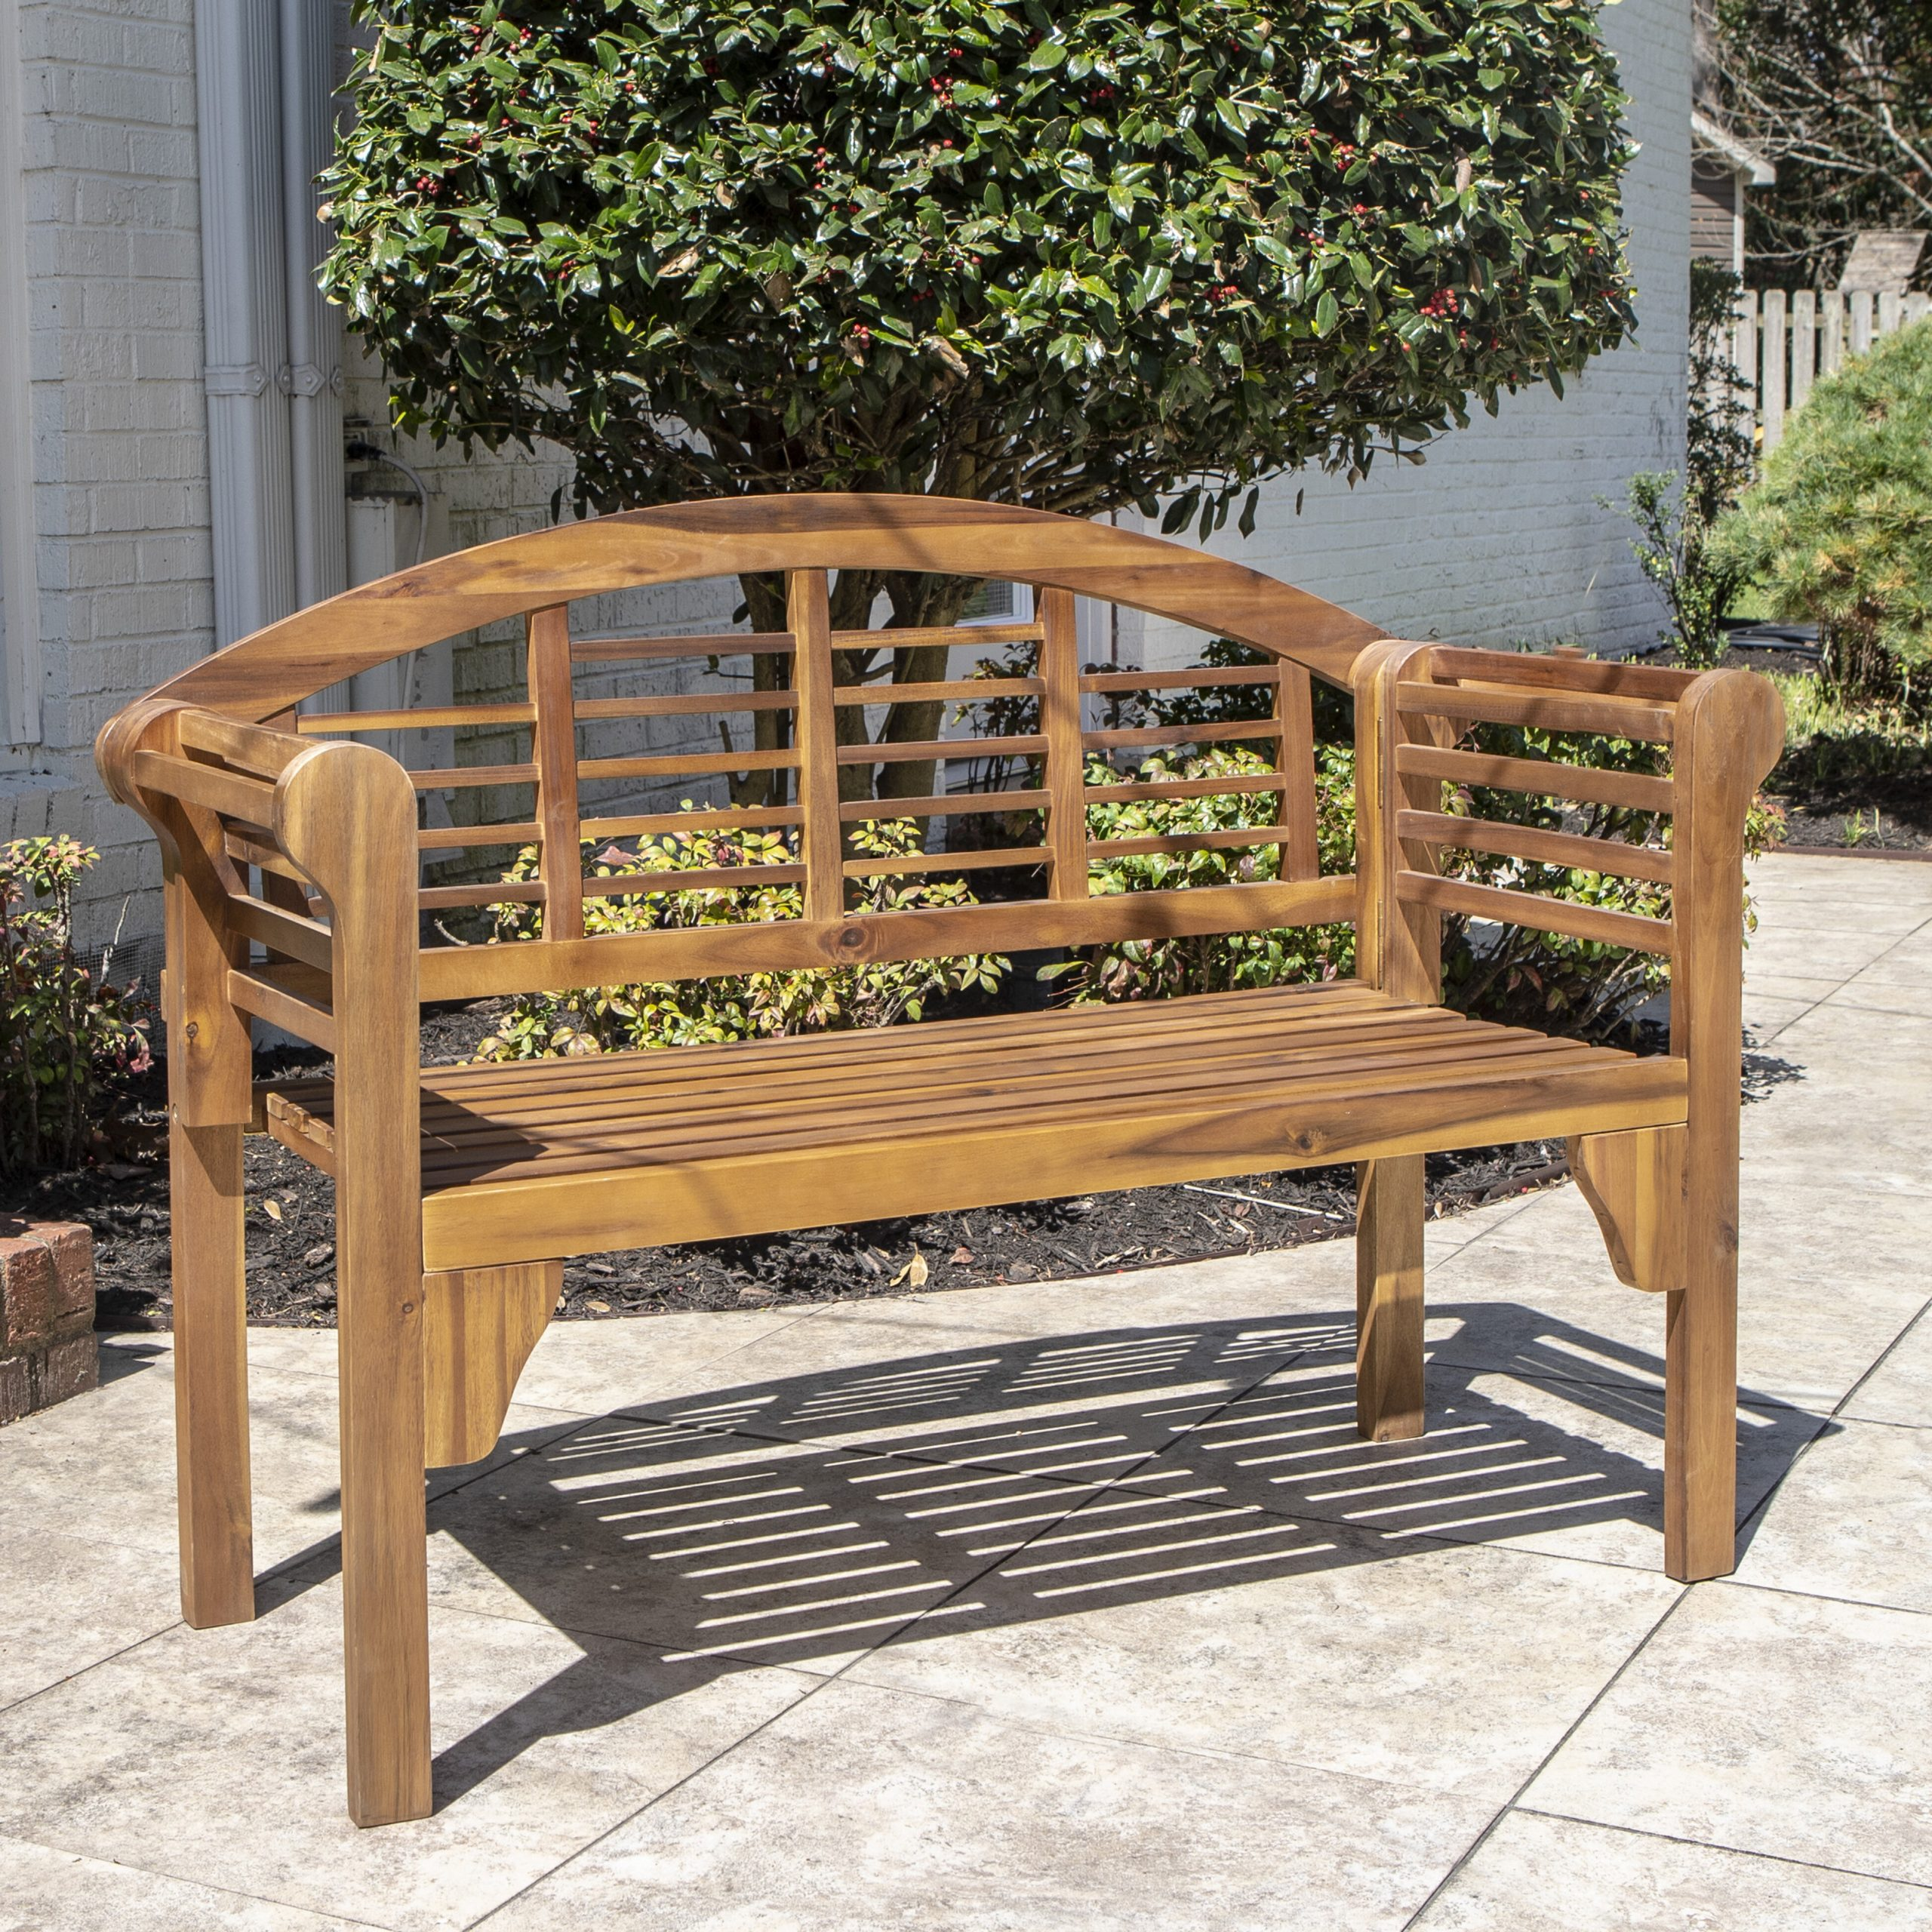 Maliyah Wooden Garden Benches Regarding Most Recently Released Mae Wood Garden Bench (View 21 of 30)